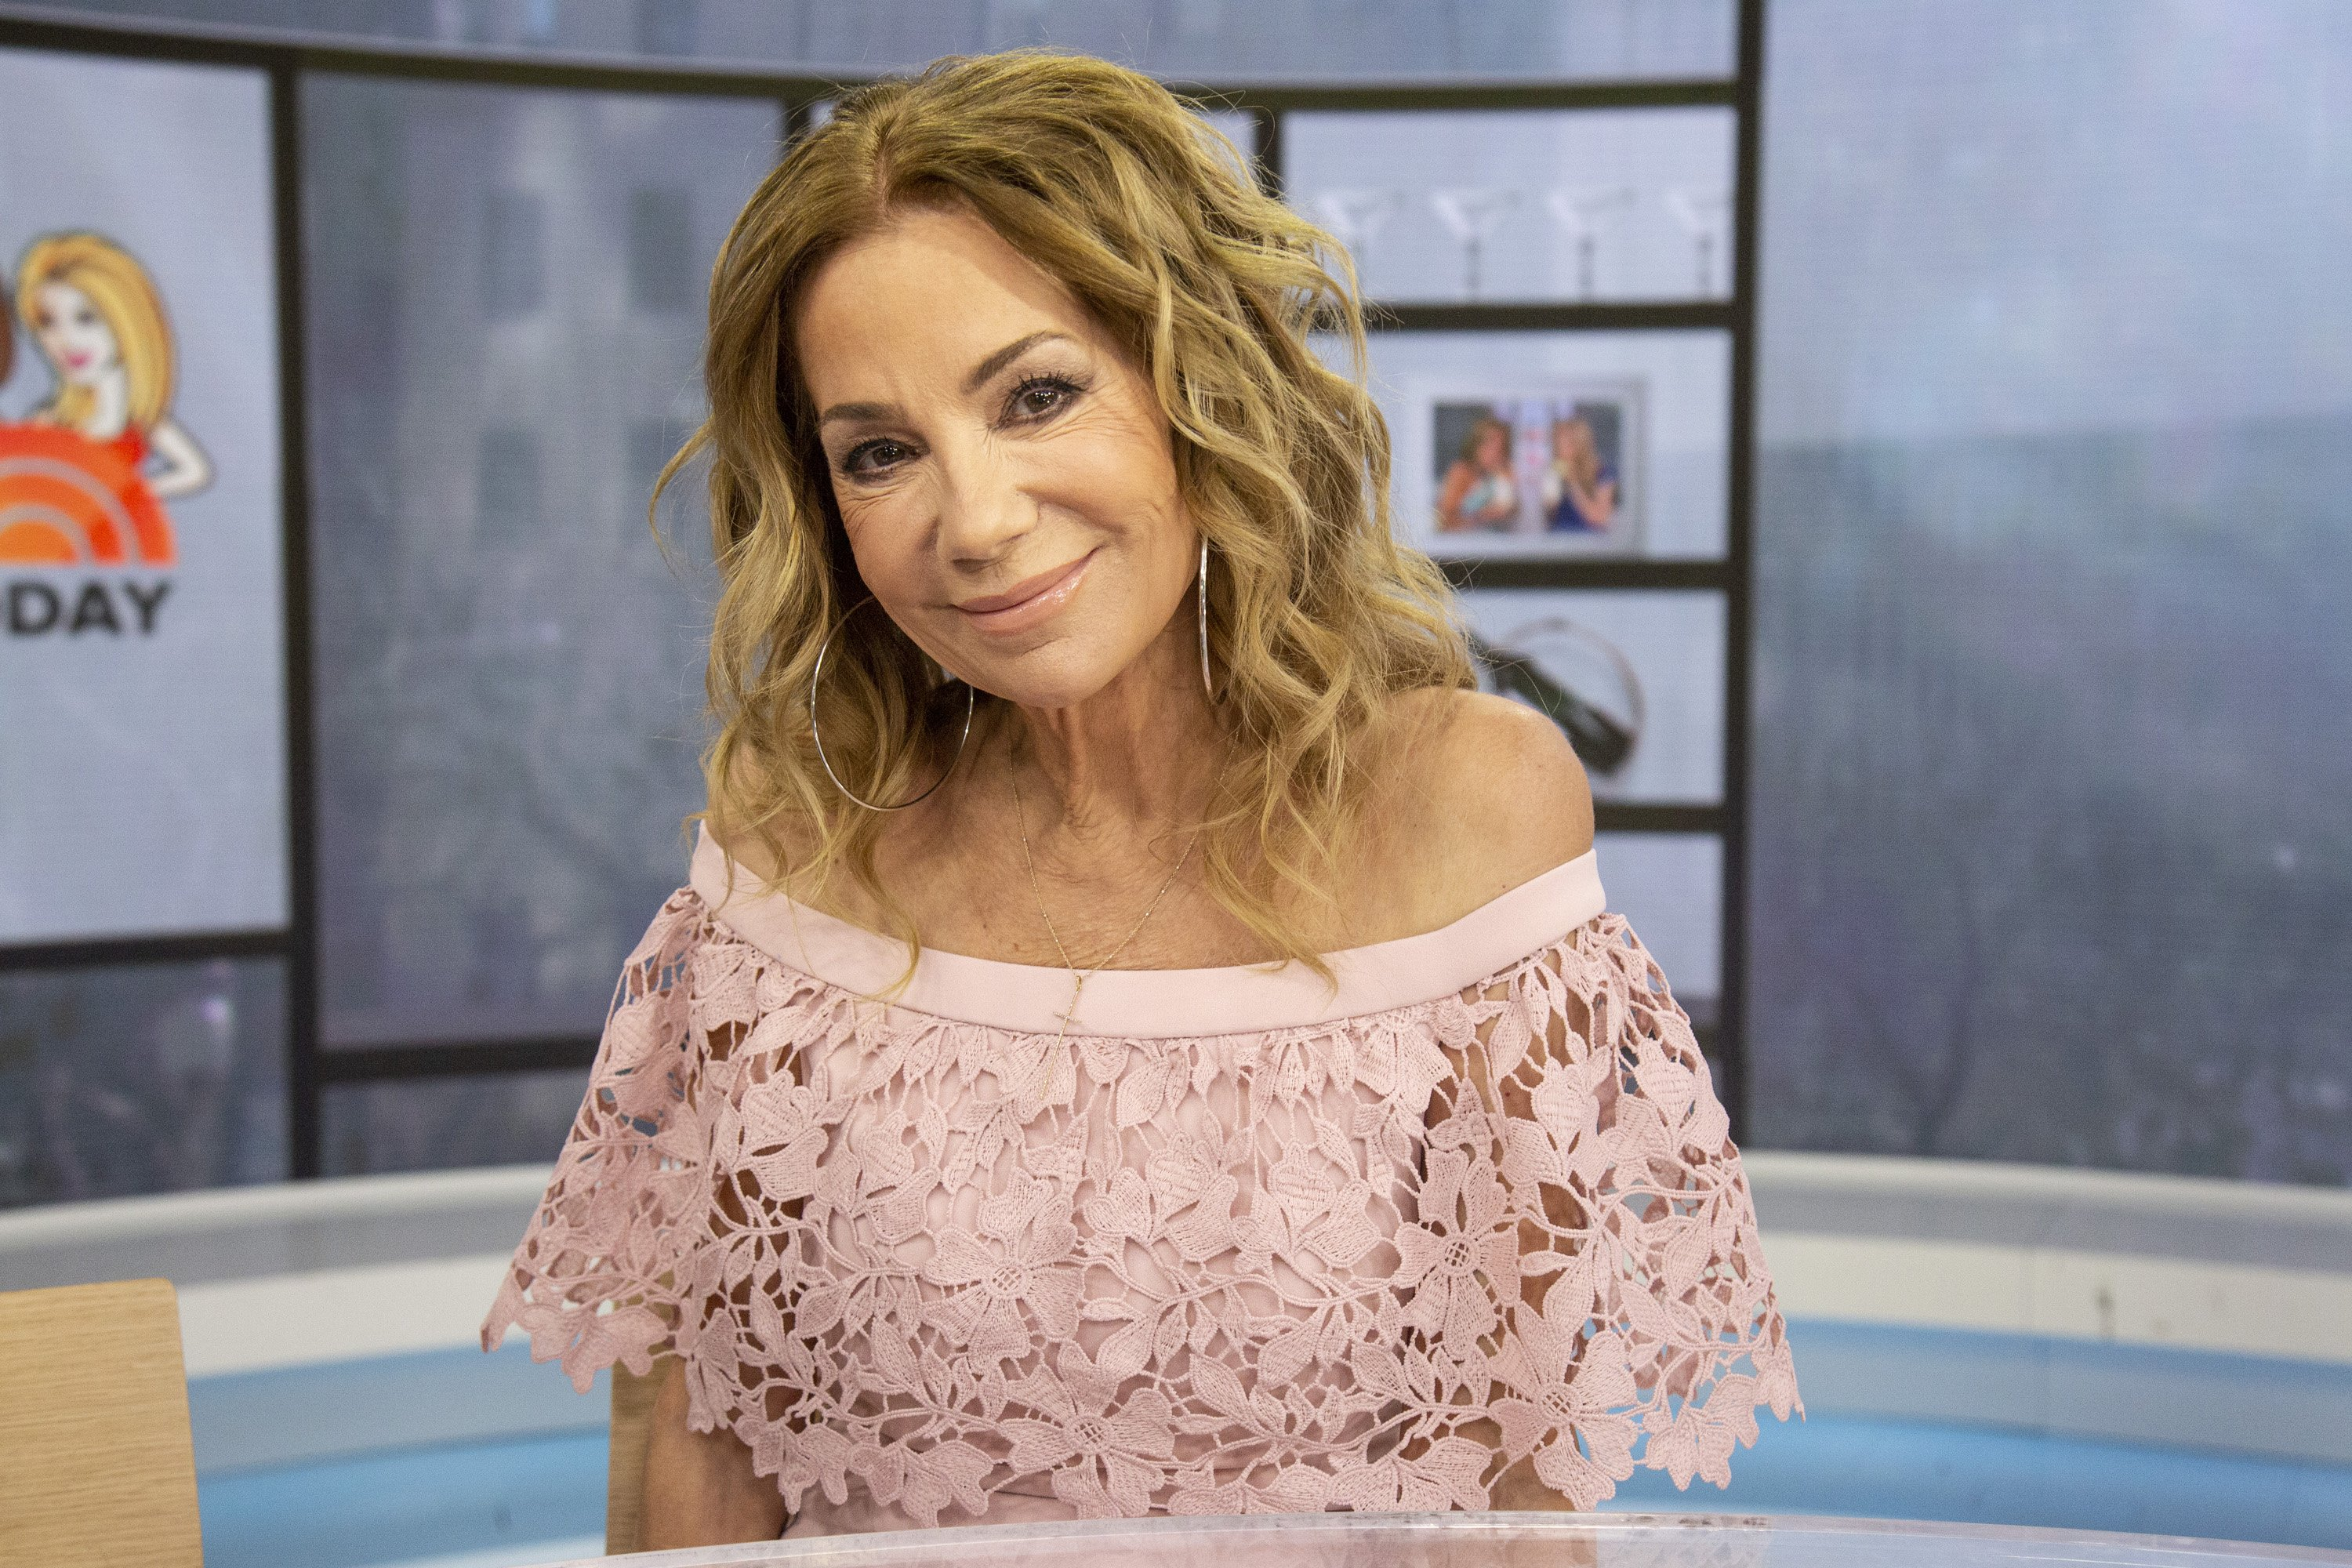 """Kathie Lee Gifford during season 68 of """"The Today Show"""" on April 2, 2019 